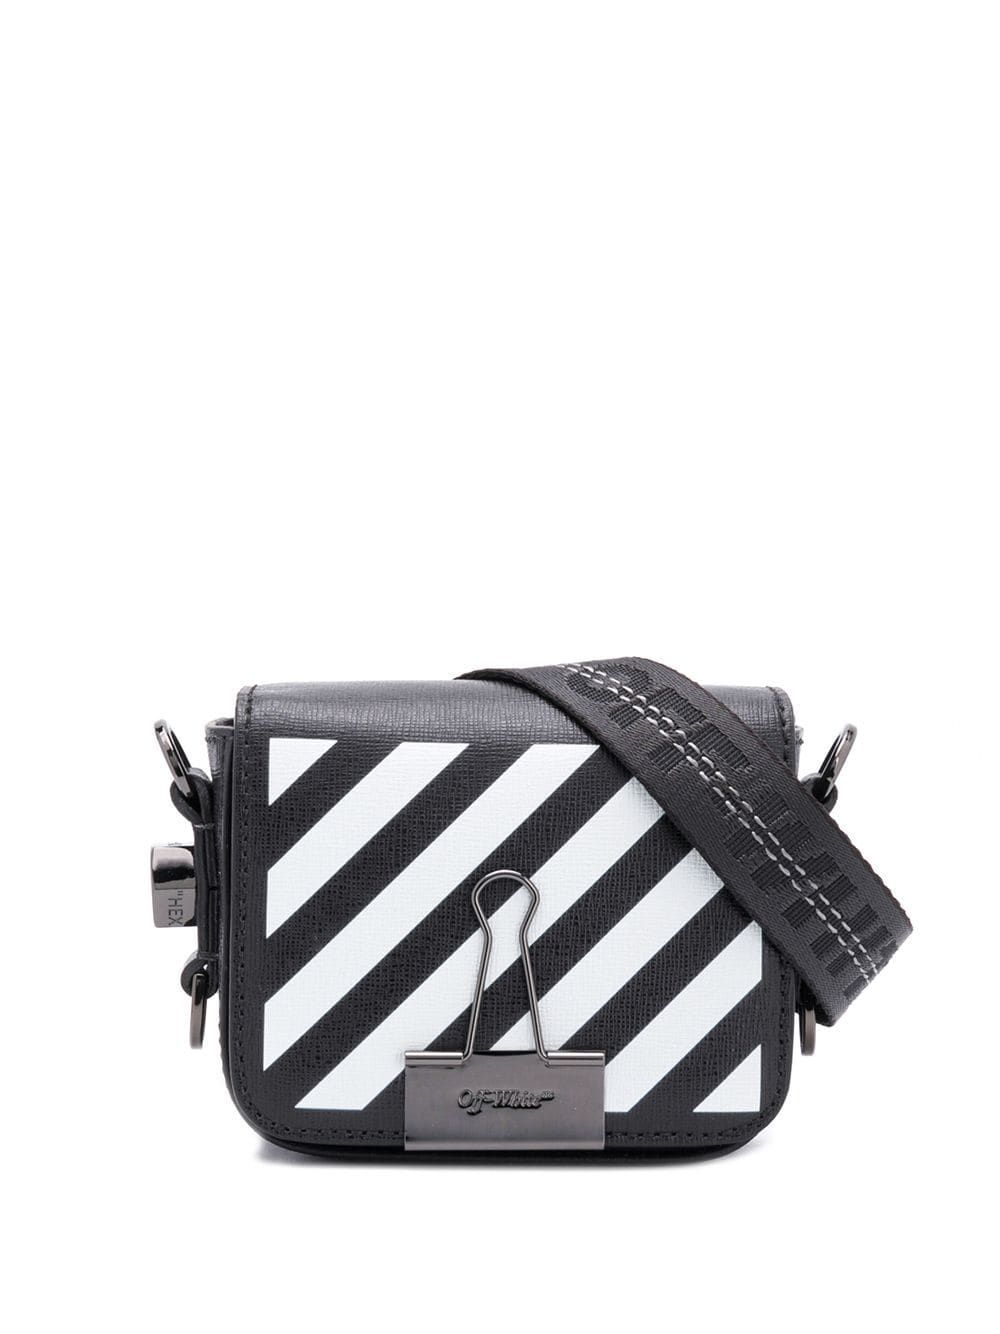 OFF-WHITE WOMEN'S OWNA087E194231071001 BLACK LEATHER SHOULDER BAG